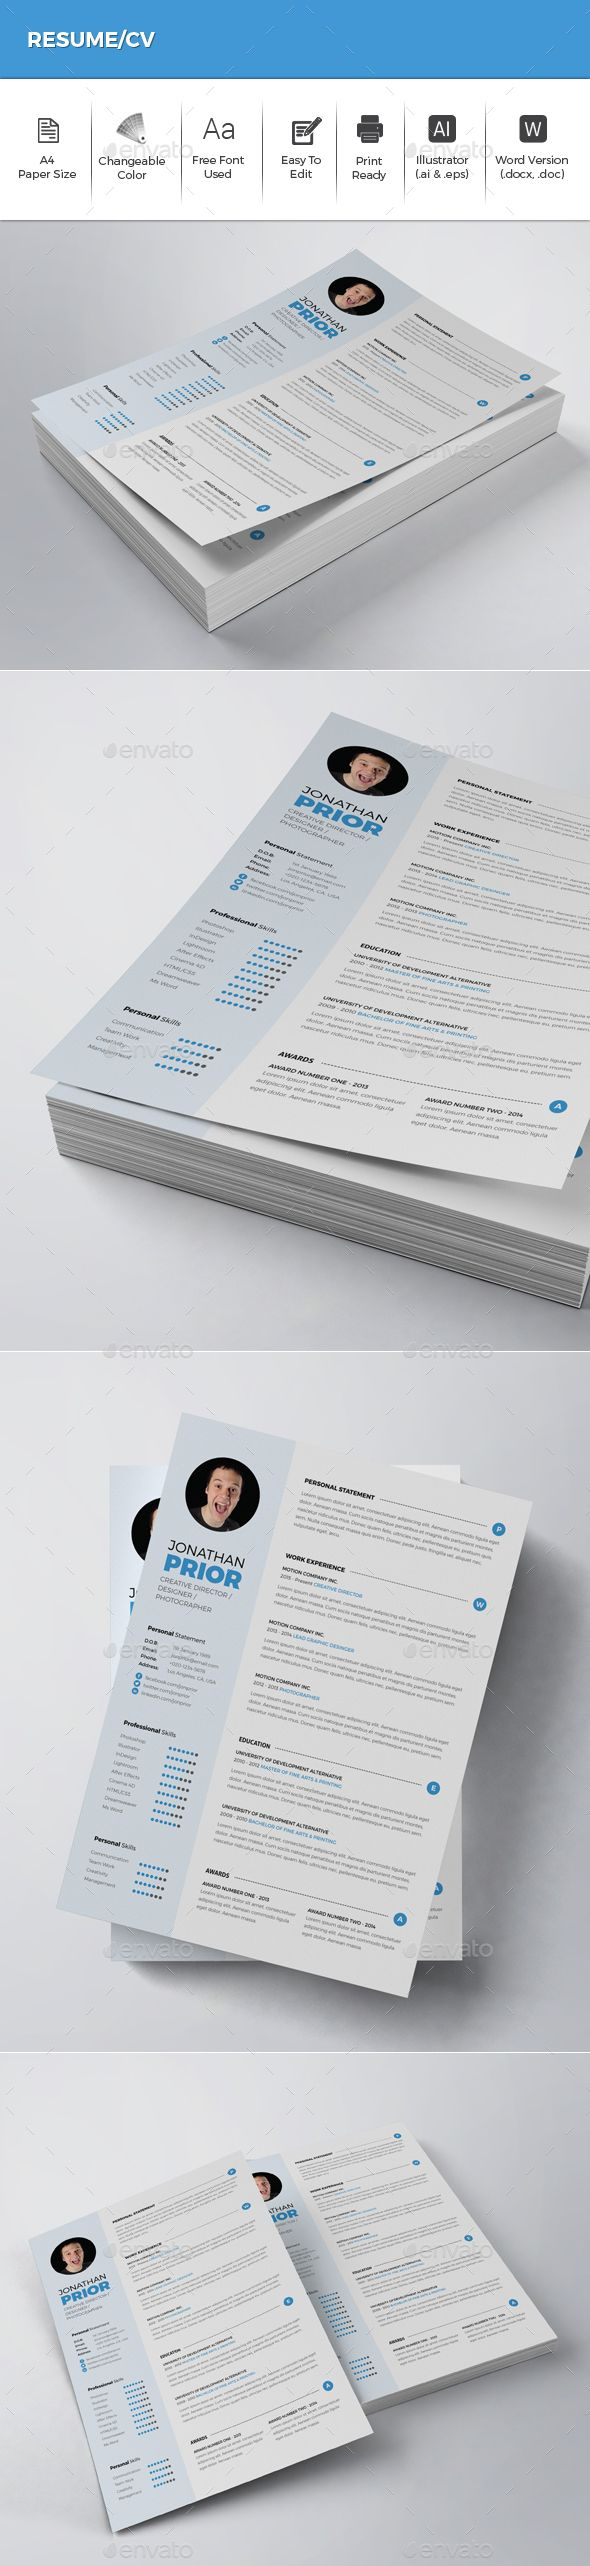 resume template torrent free resume templates 17 downloadable